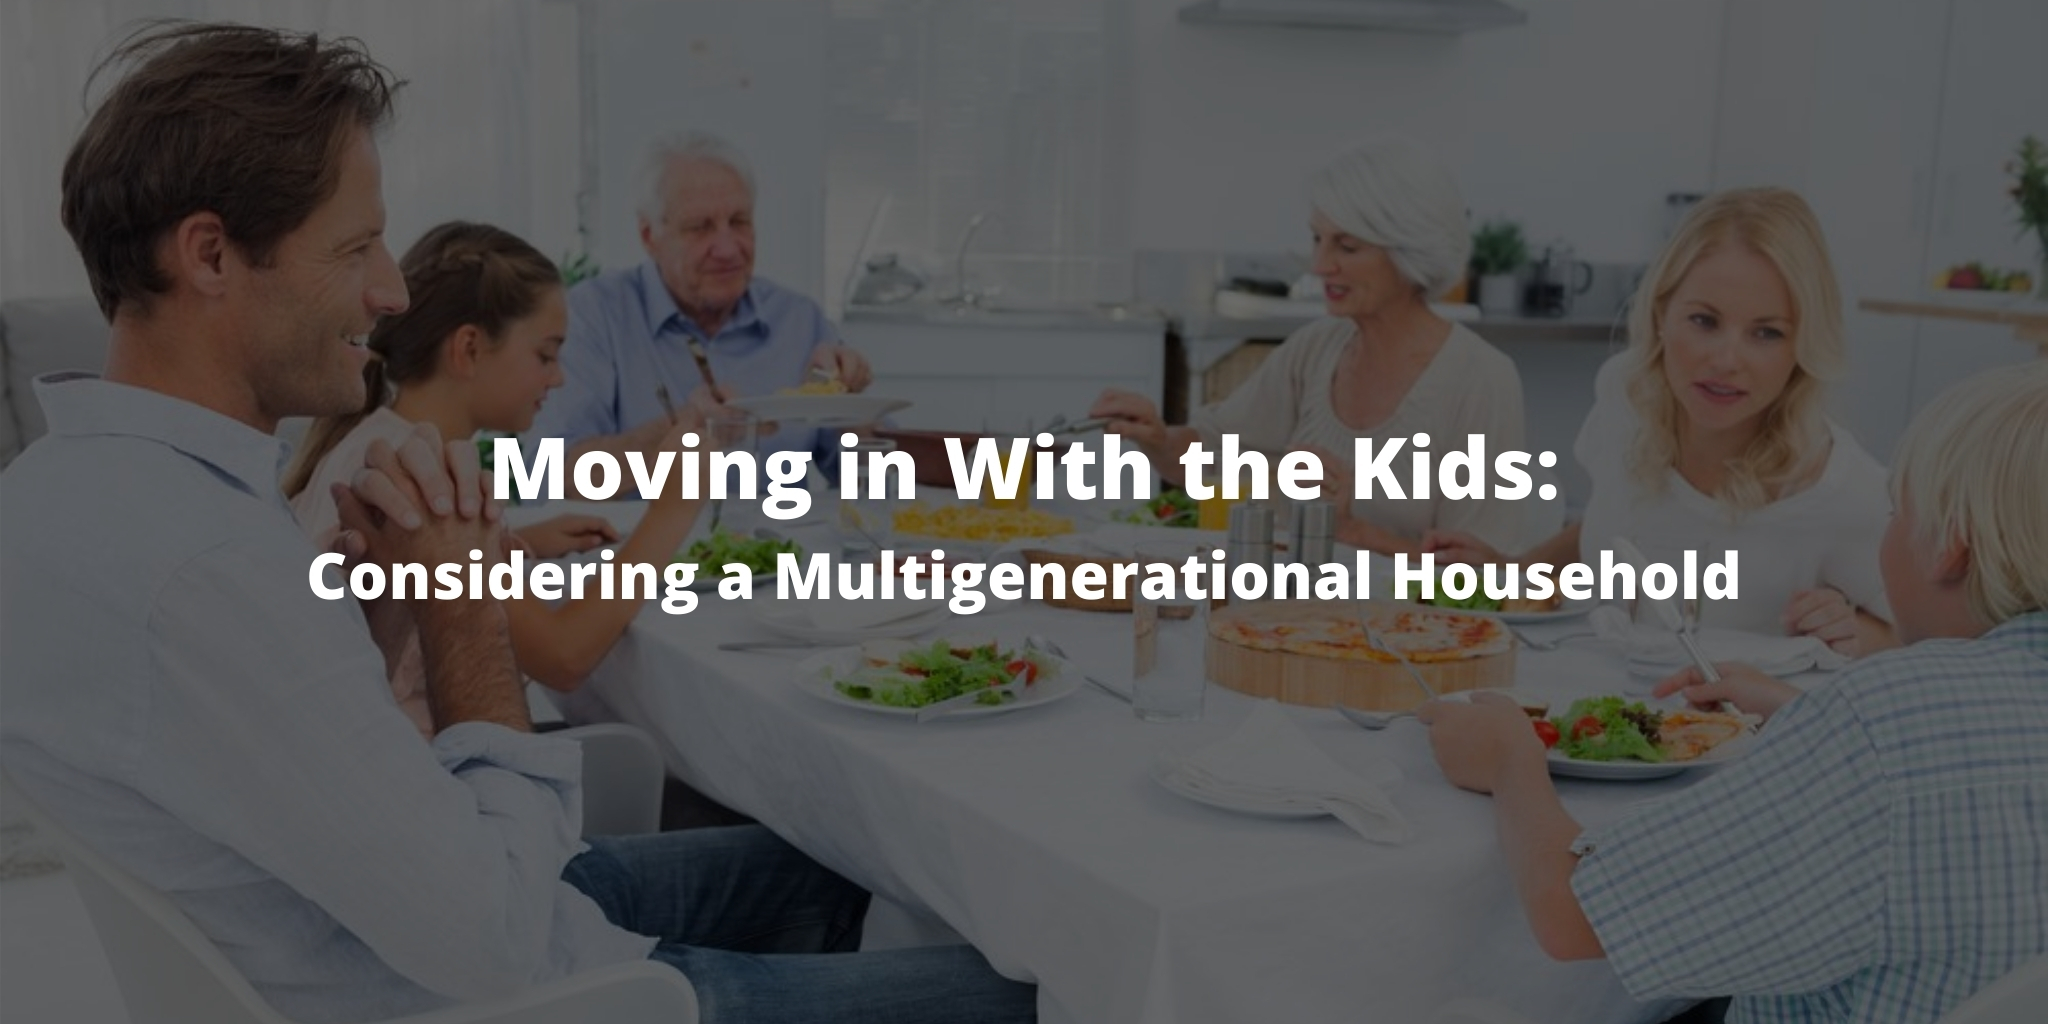 Moving in With the Kids: Considering a Multigenerational Household